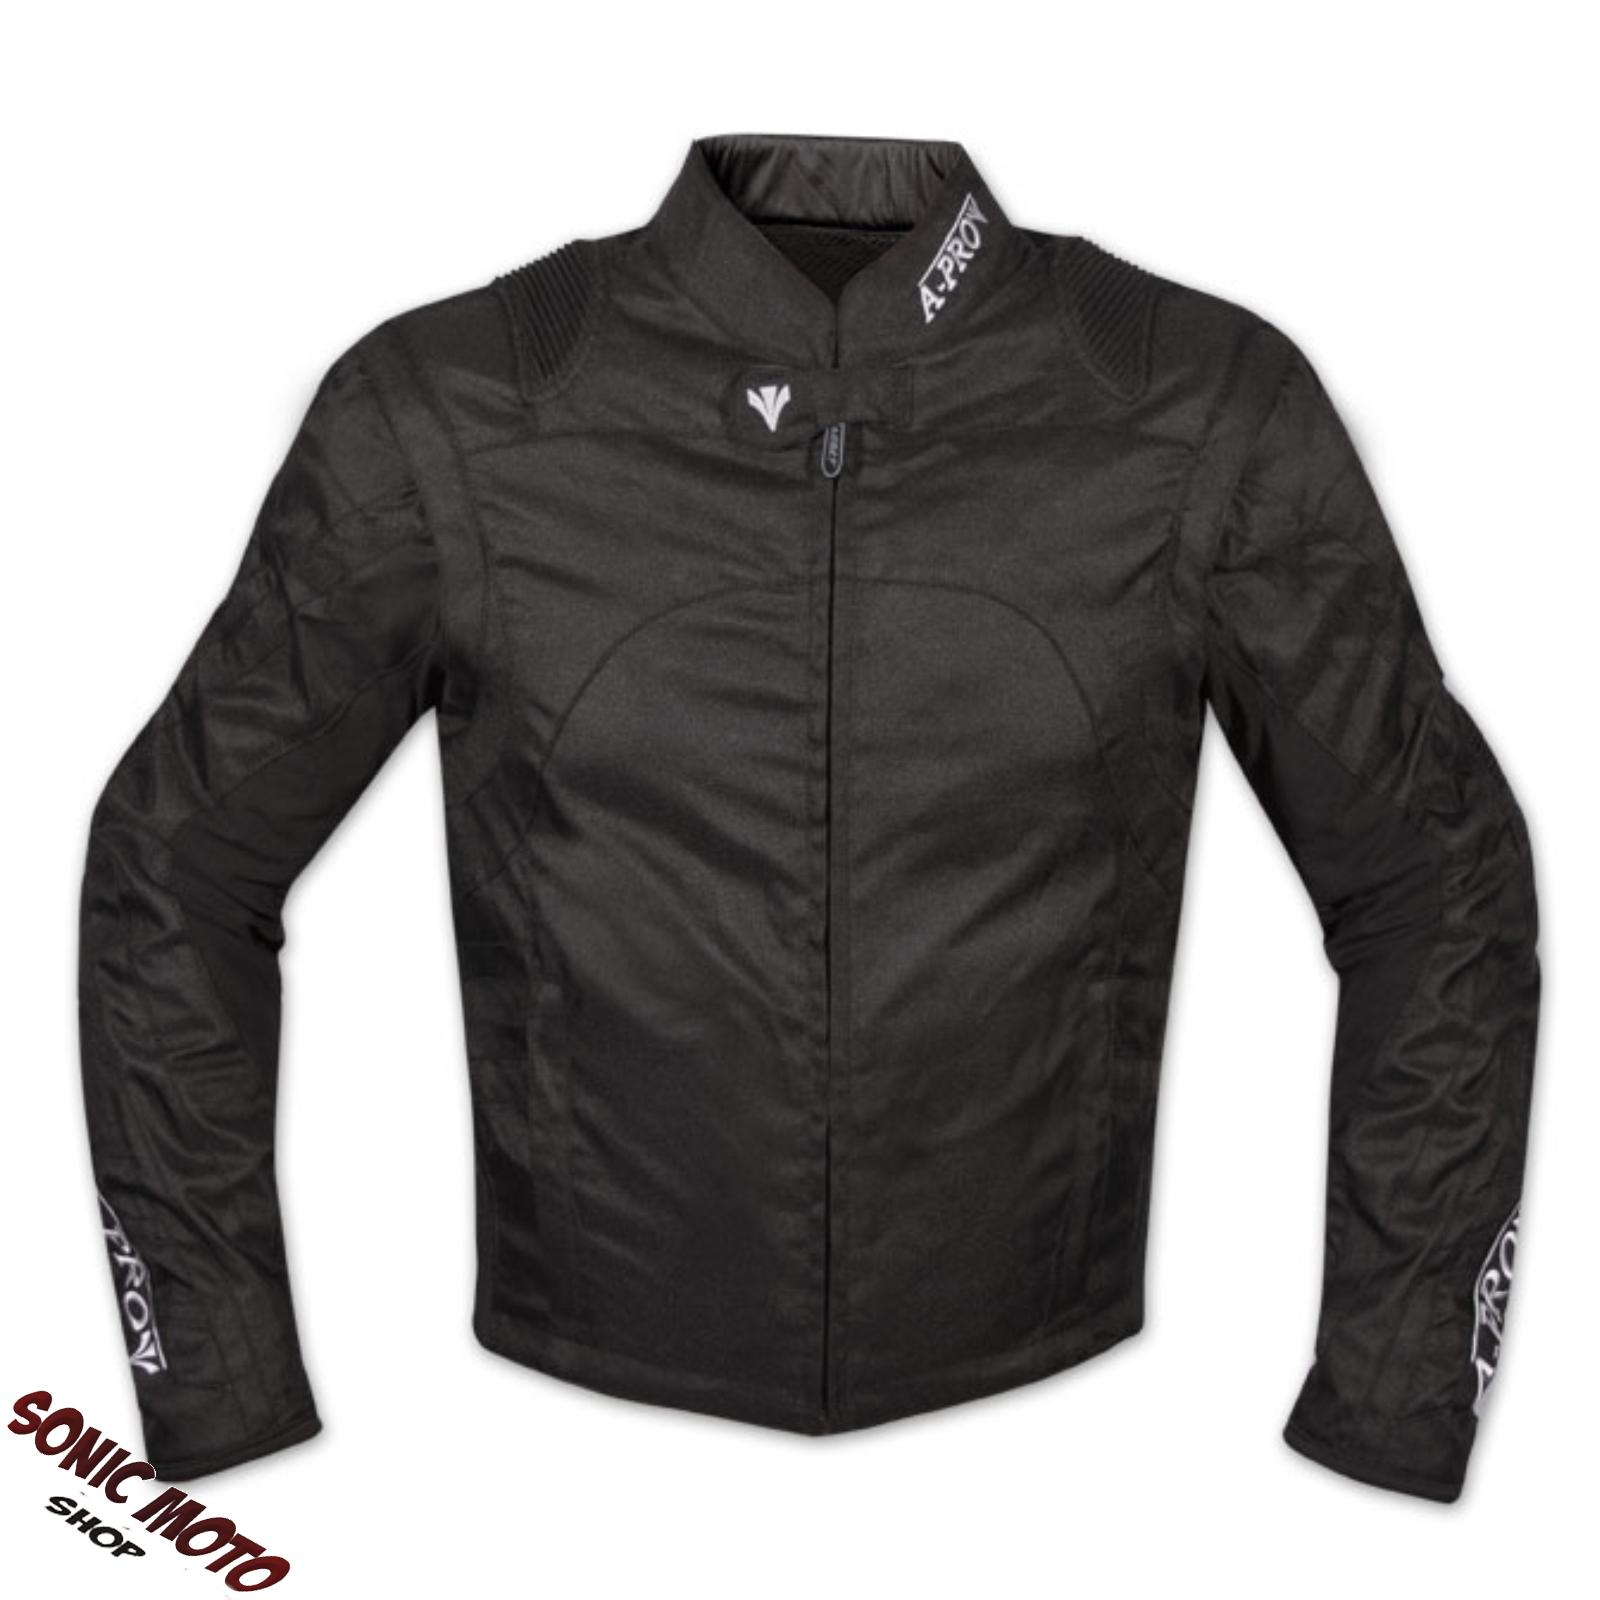 Cordura-Moto-Jacket-manga-desmontable-Racing-Sport-Touring-Scooter-negro